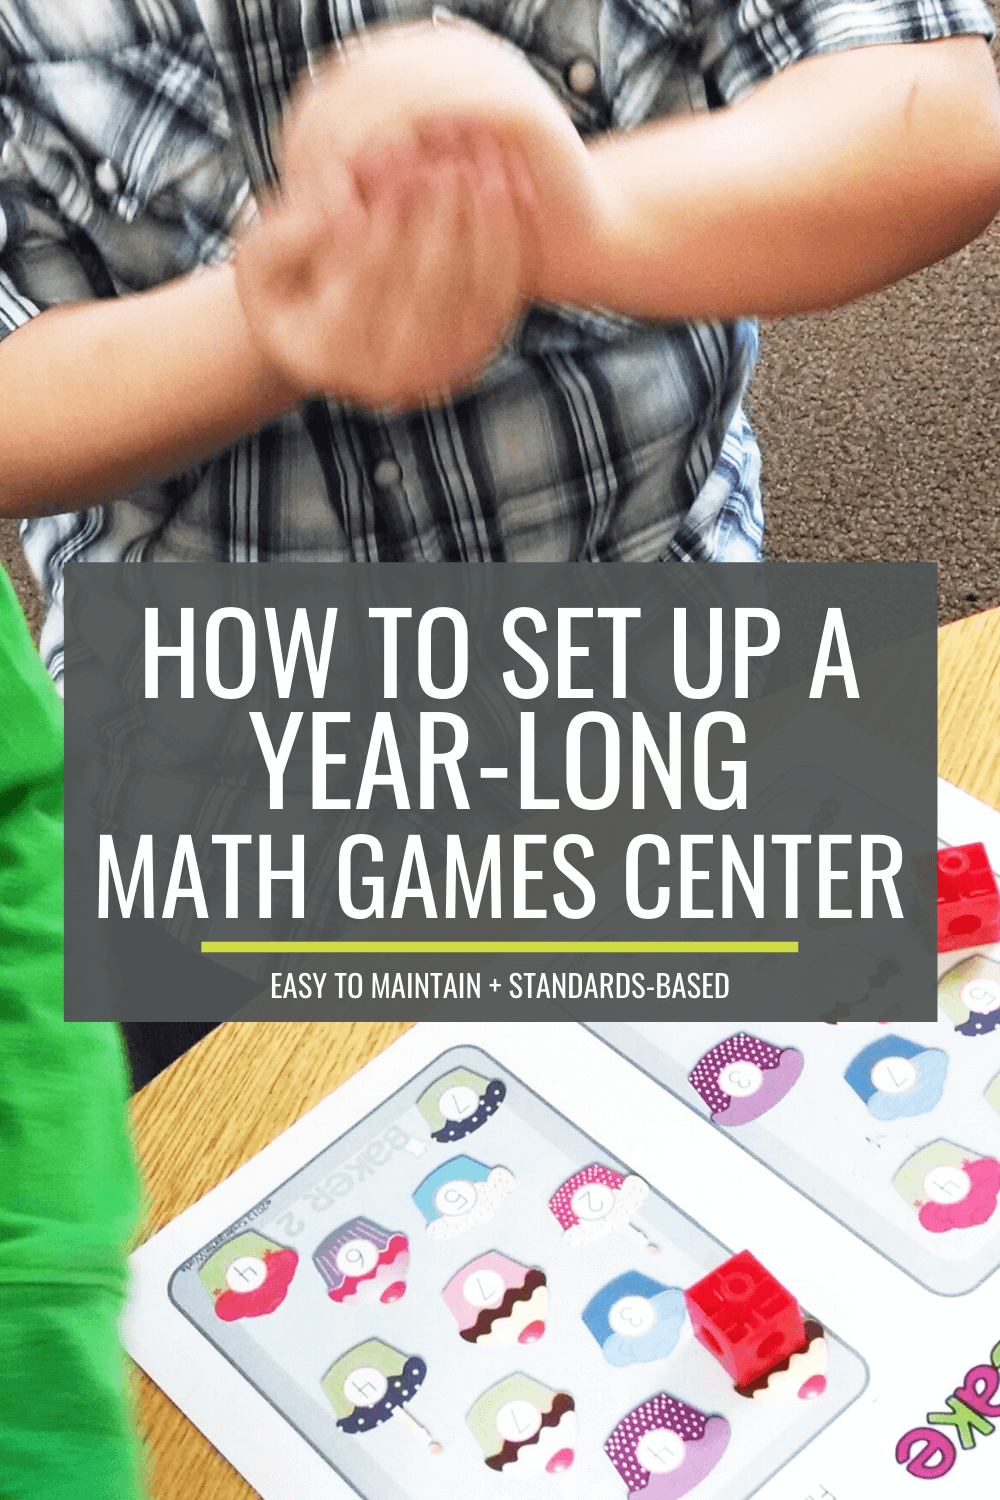 How to Set Up a Year-Long Math Games and Activities Center